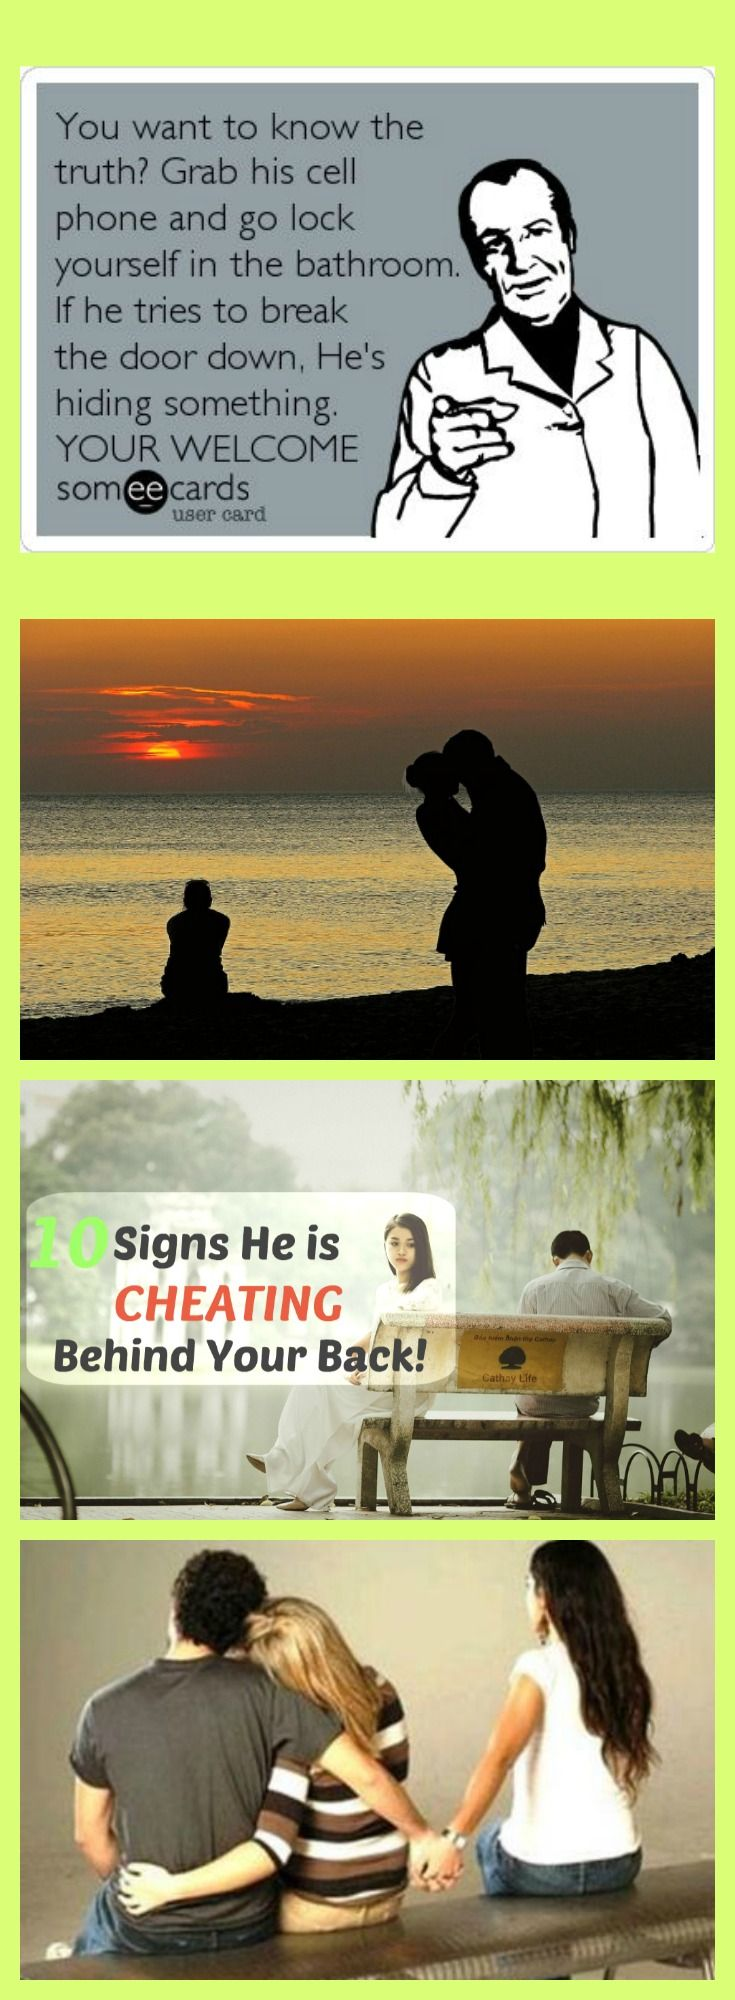 signs he is hiding something